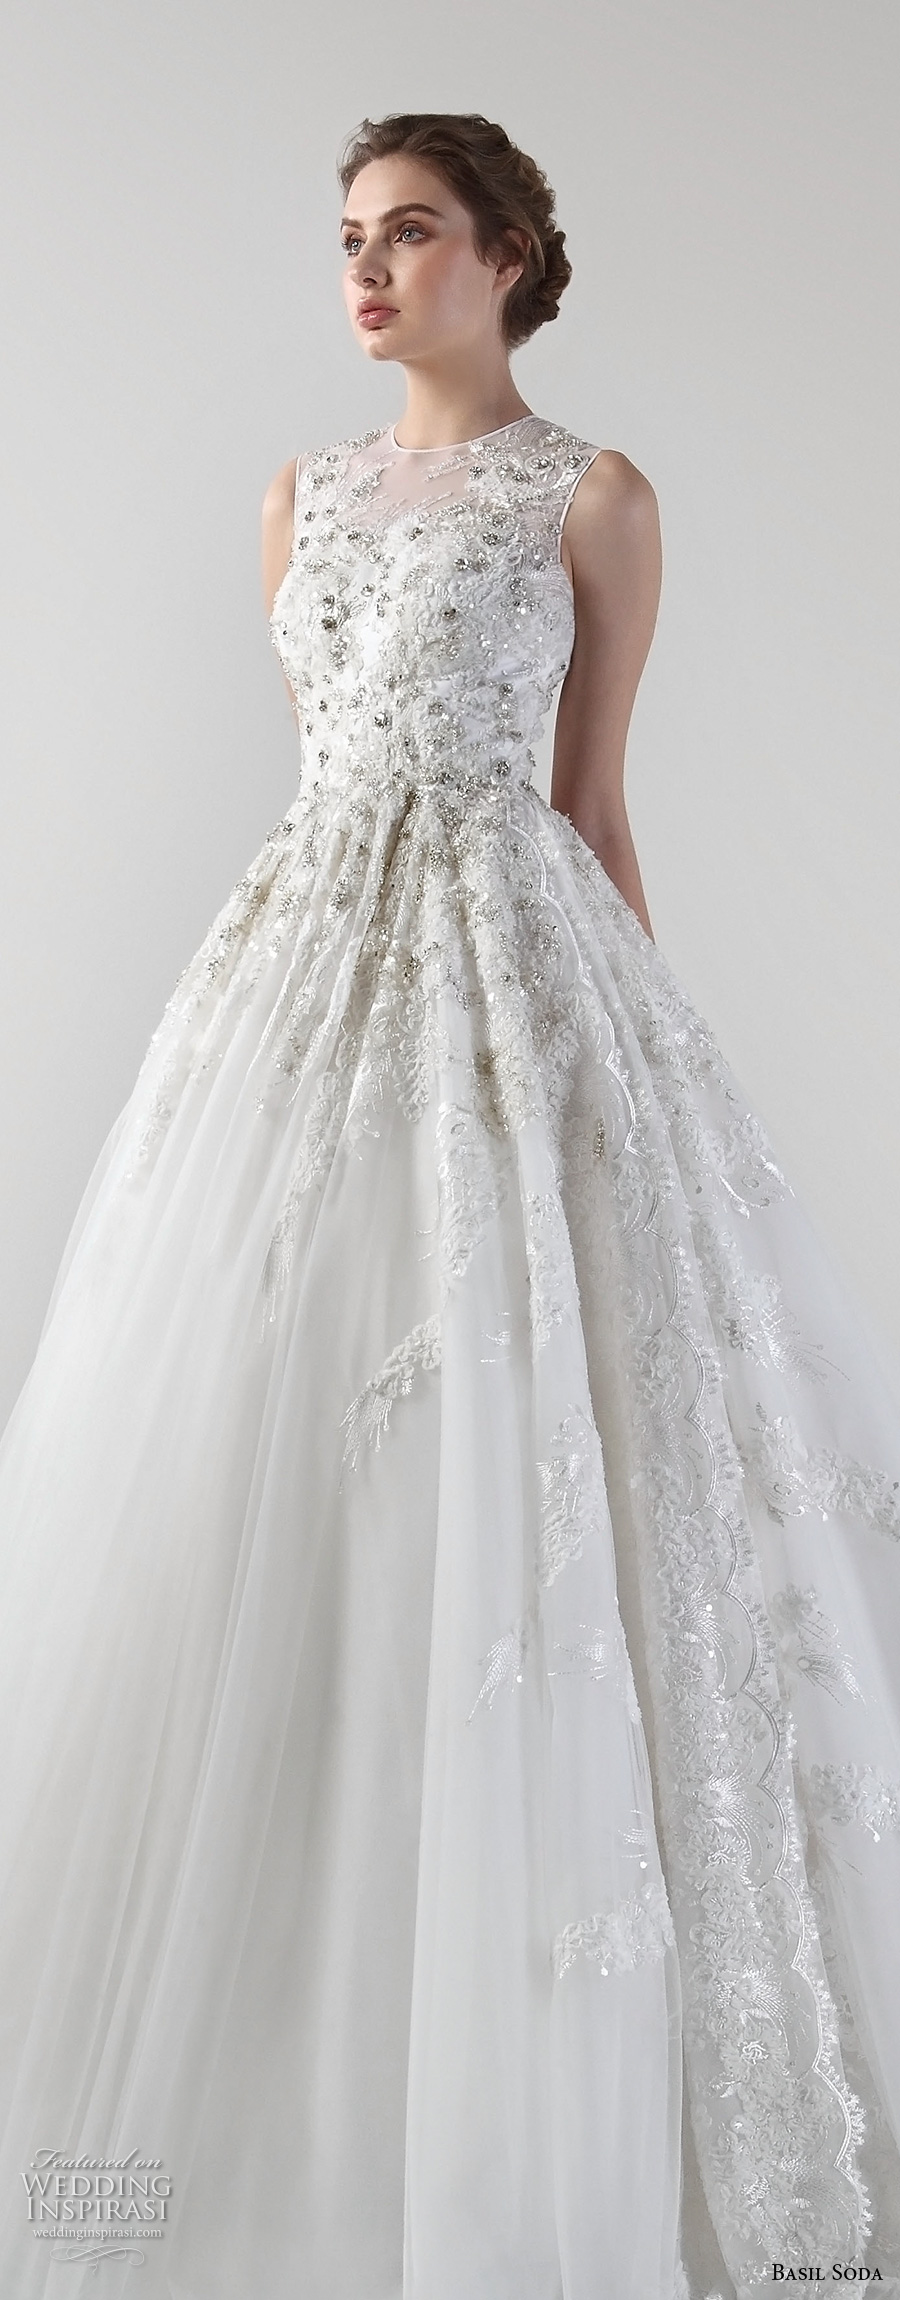 basil soda 2017 bridal sleeveless jewel neck heavily embellished beaded bodice romantic a line wedding dress chapel train (6) zv